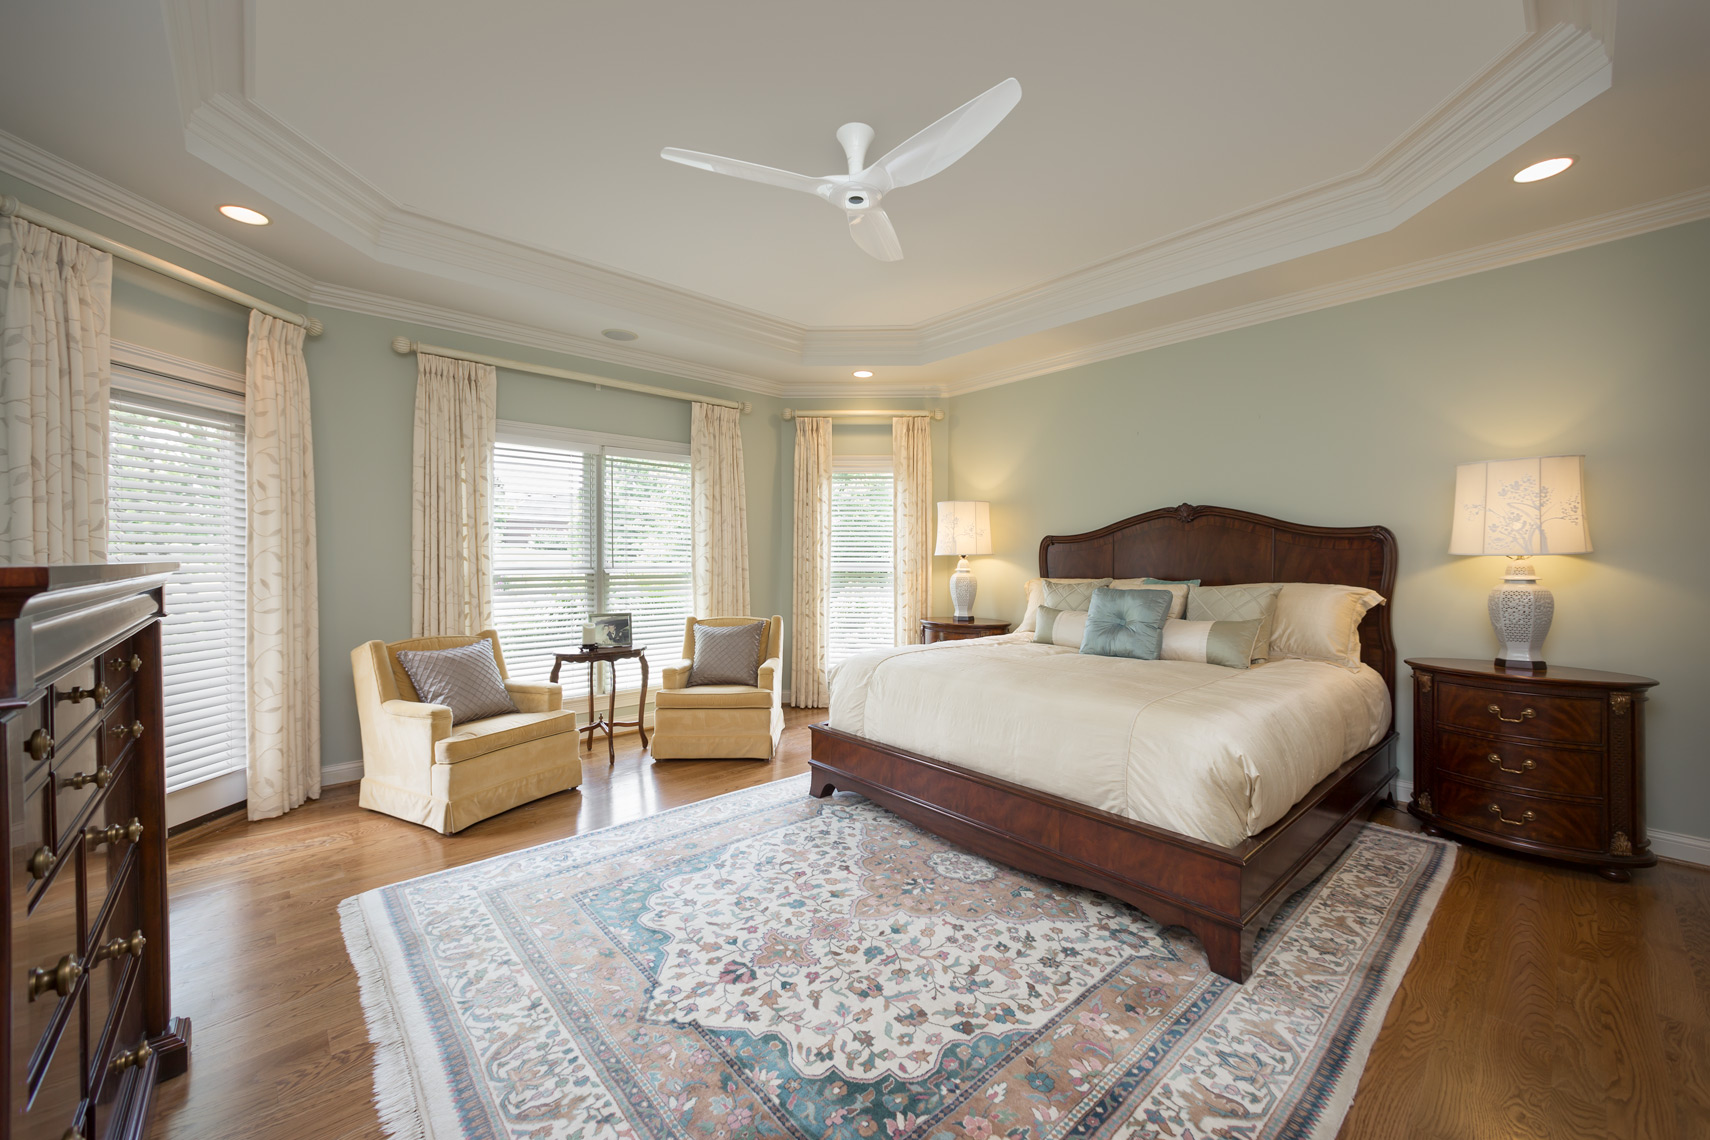 Traditional bedroom with ceiling fan